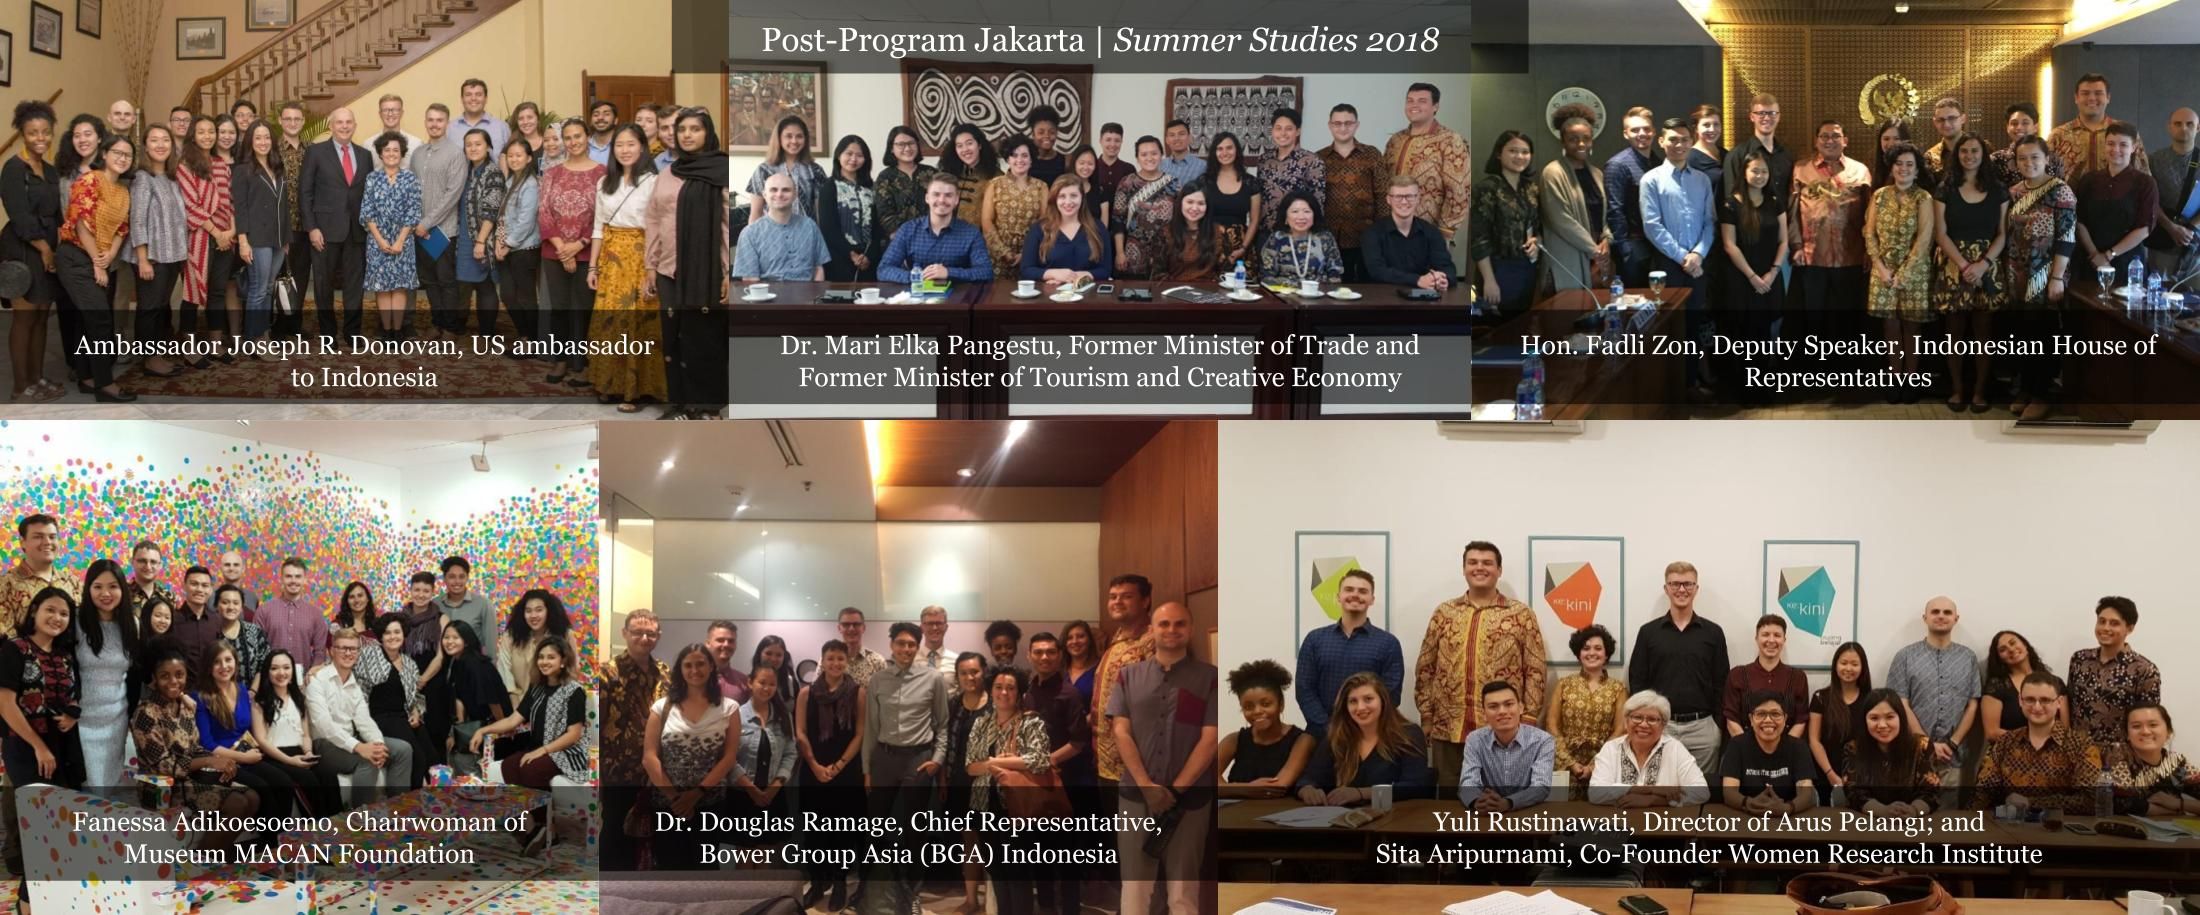 USINDO Summer Studies 2018 Post Program